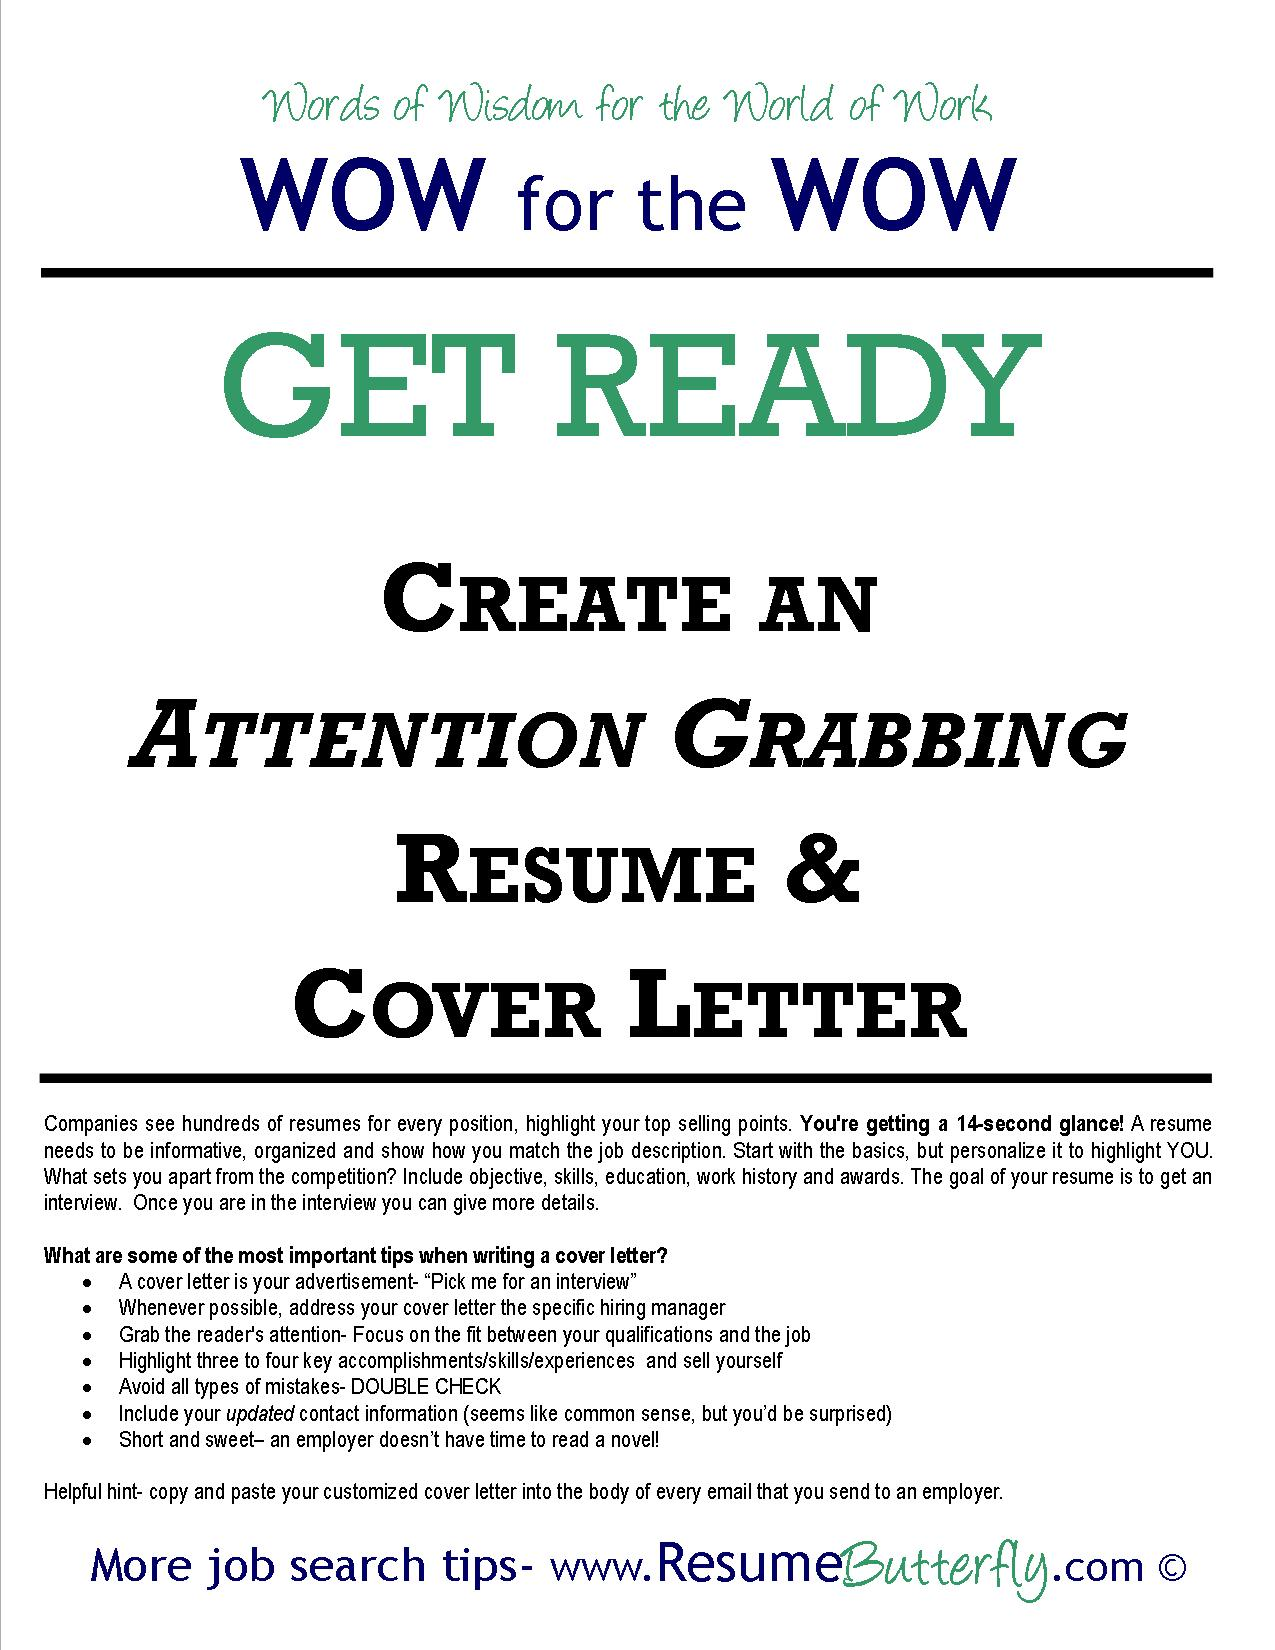 Create An Attention Grabbing Resume Cover Letter